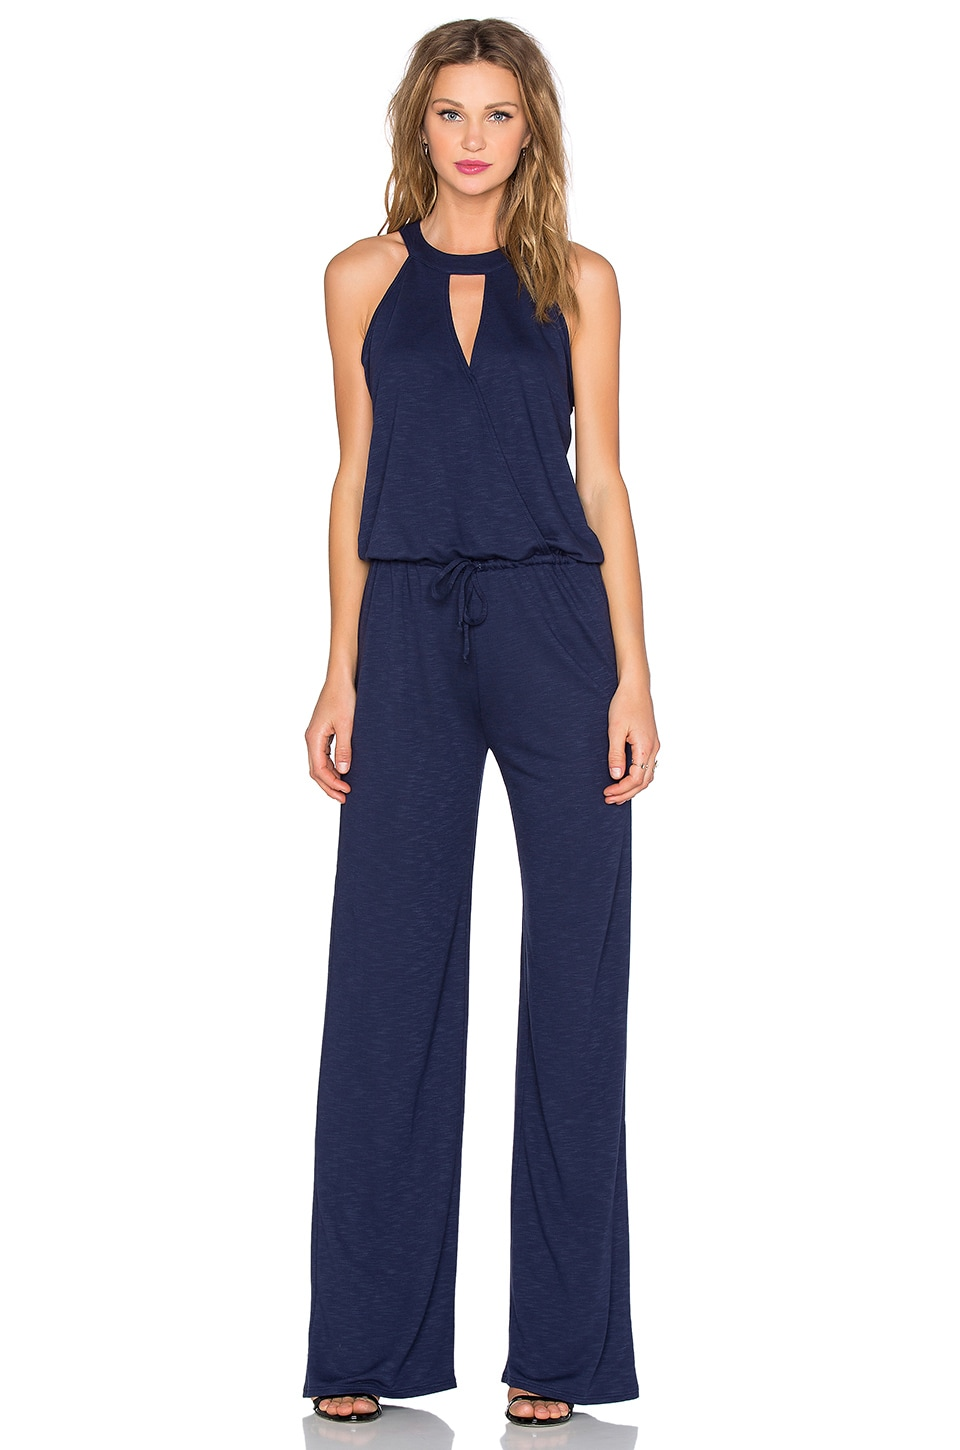 Lanston Surplice Jumpsuit in Ink